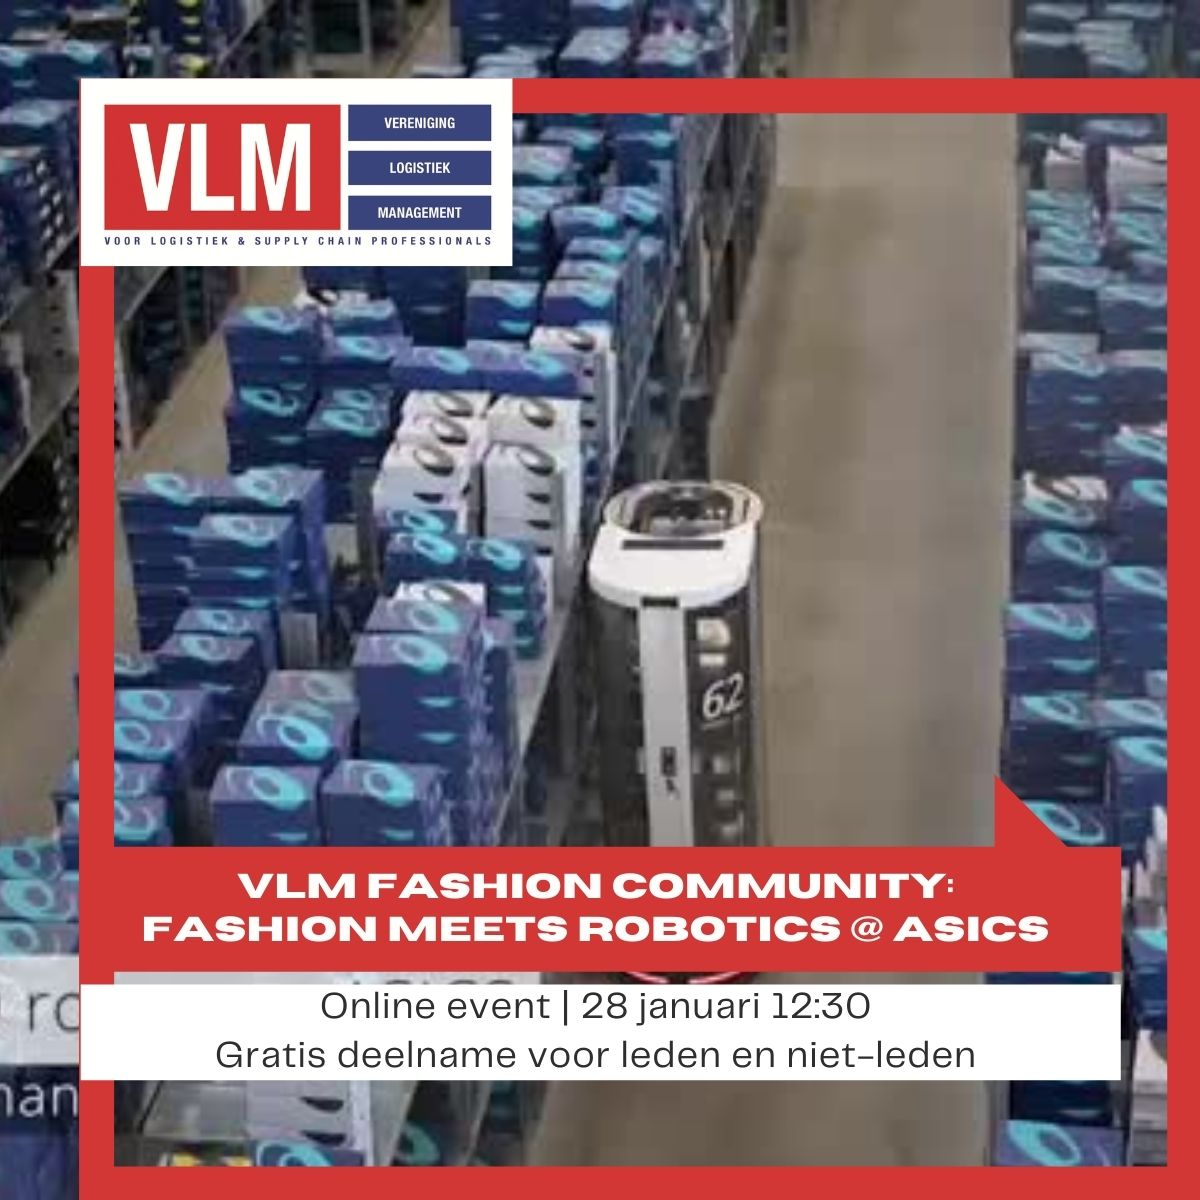 vLm webinar – Fashion meets robotics